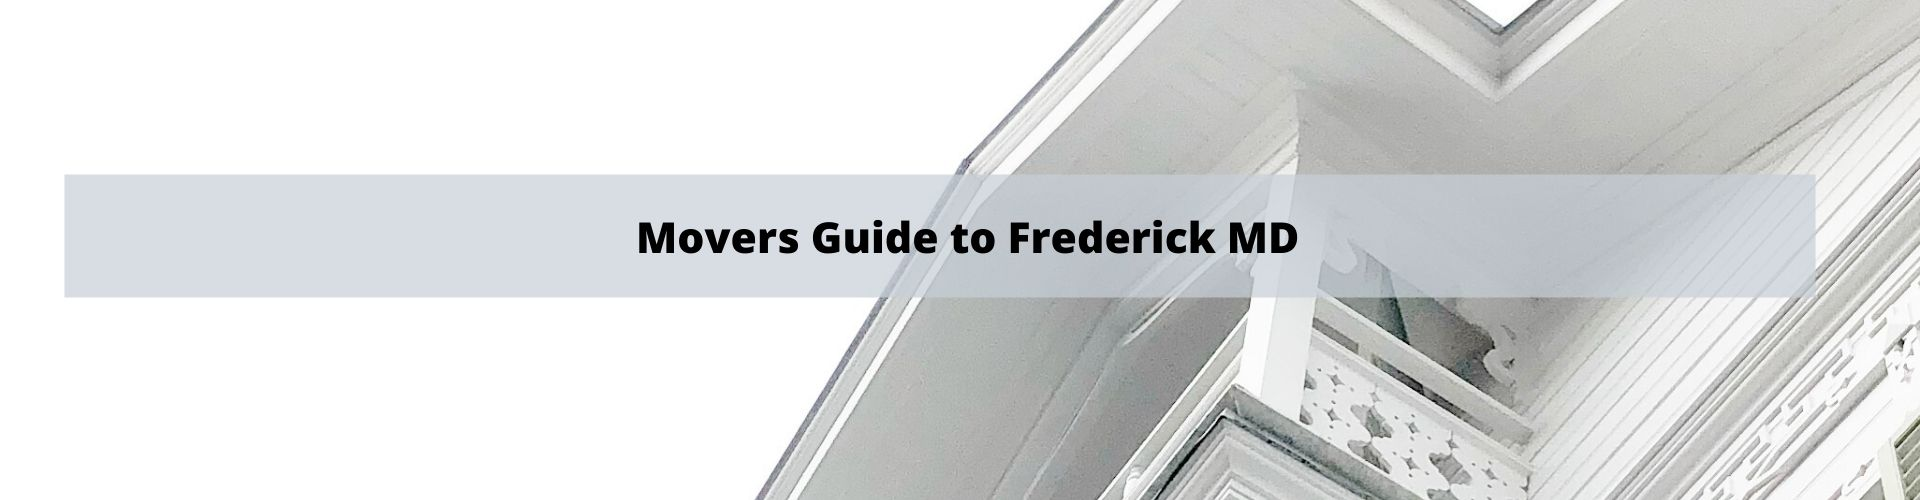 Mover's Guide to Frederick MD